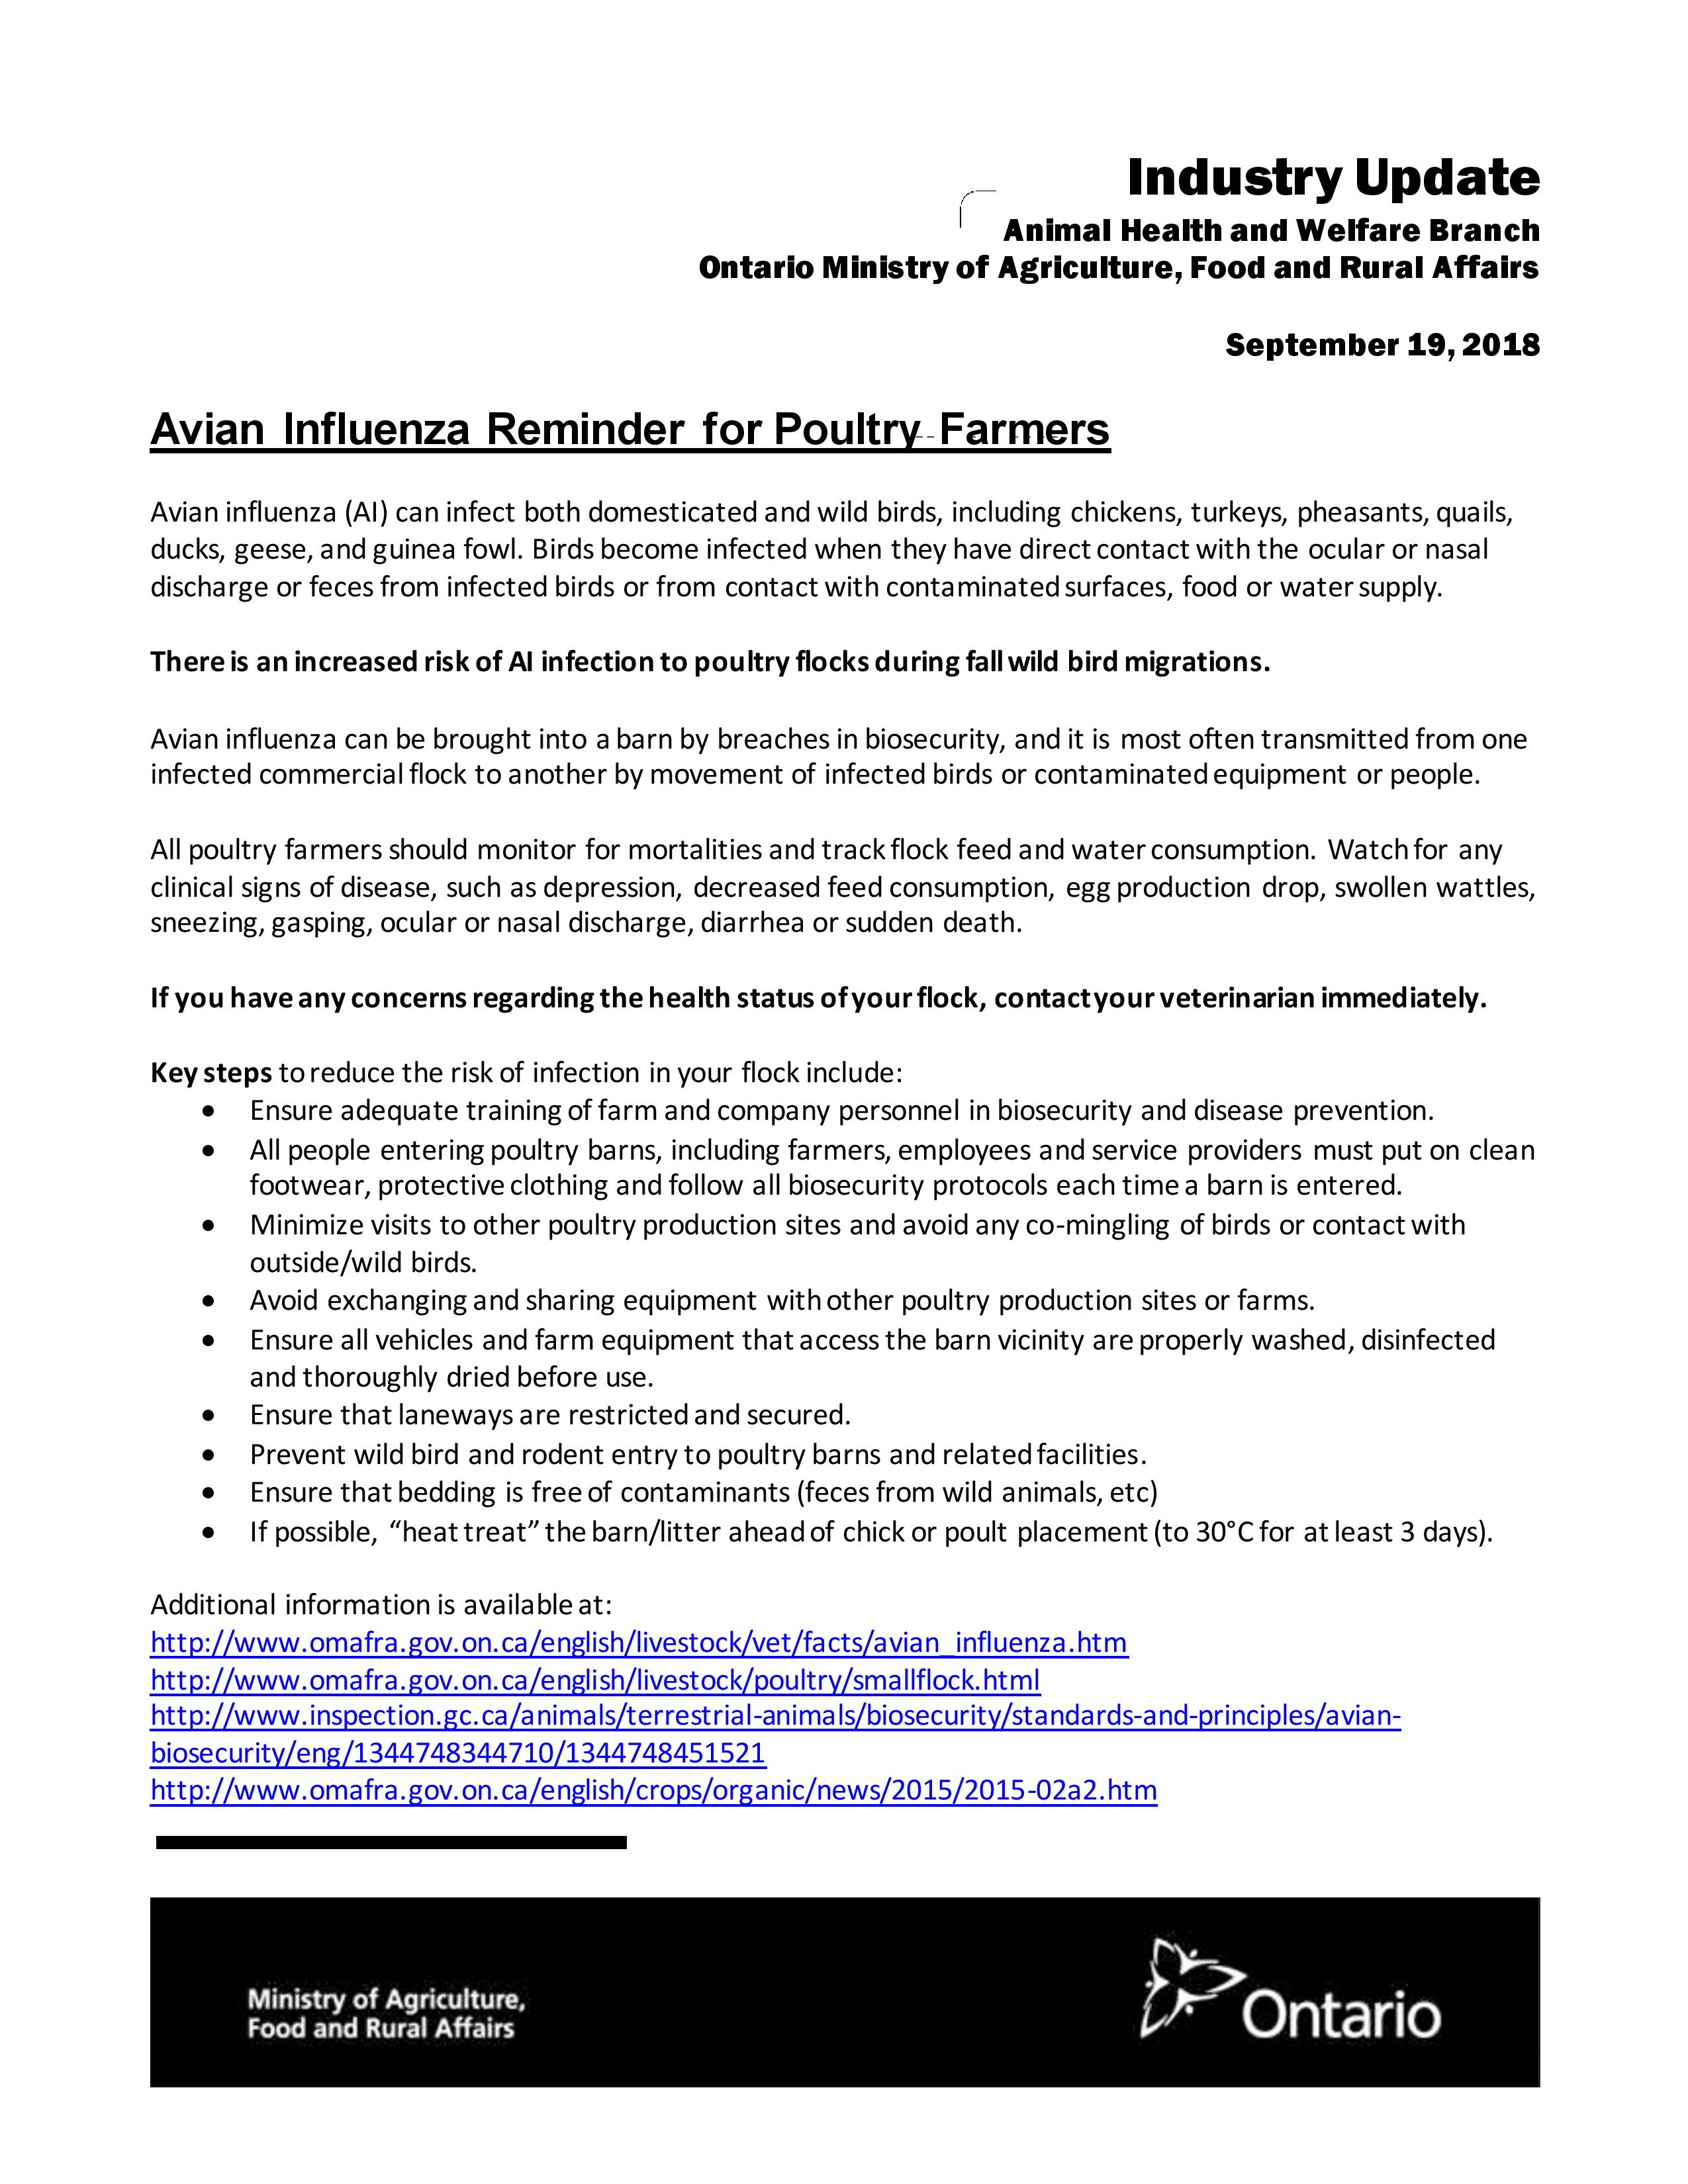 OMAFRA Avian Influenza Reminder for Poultry Farmers - Ontario Animal